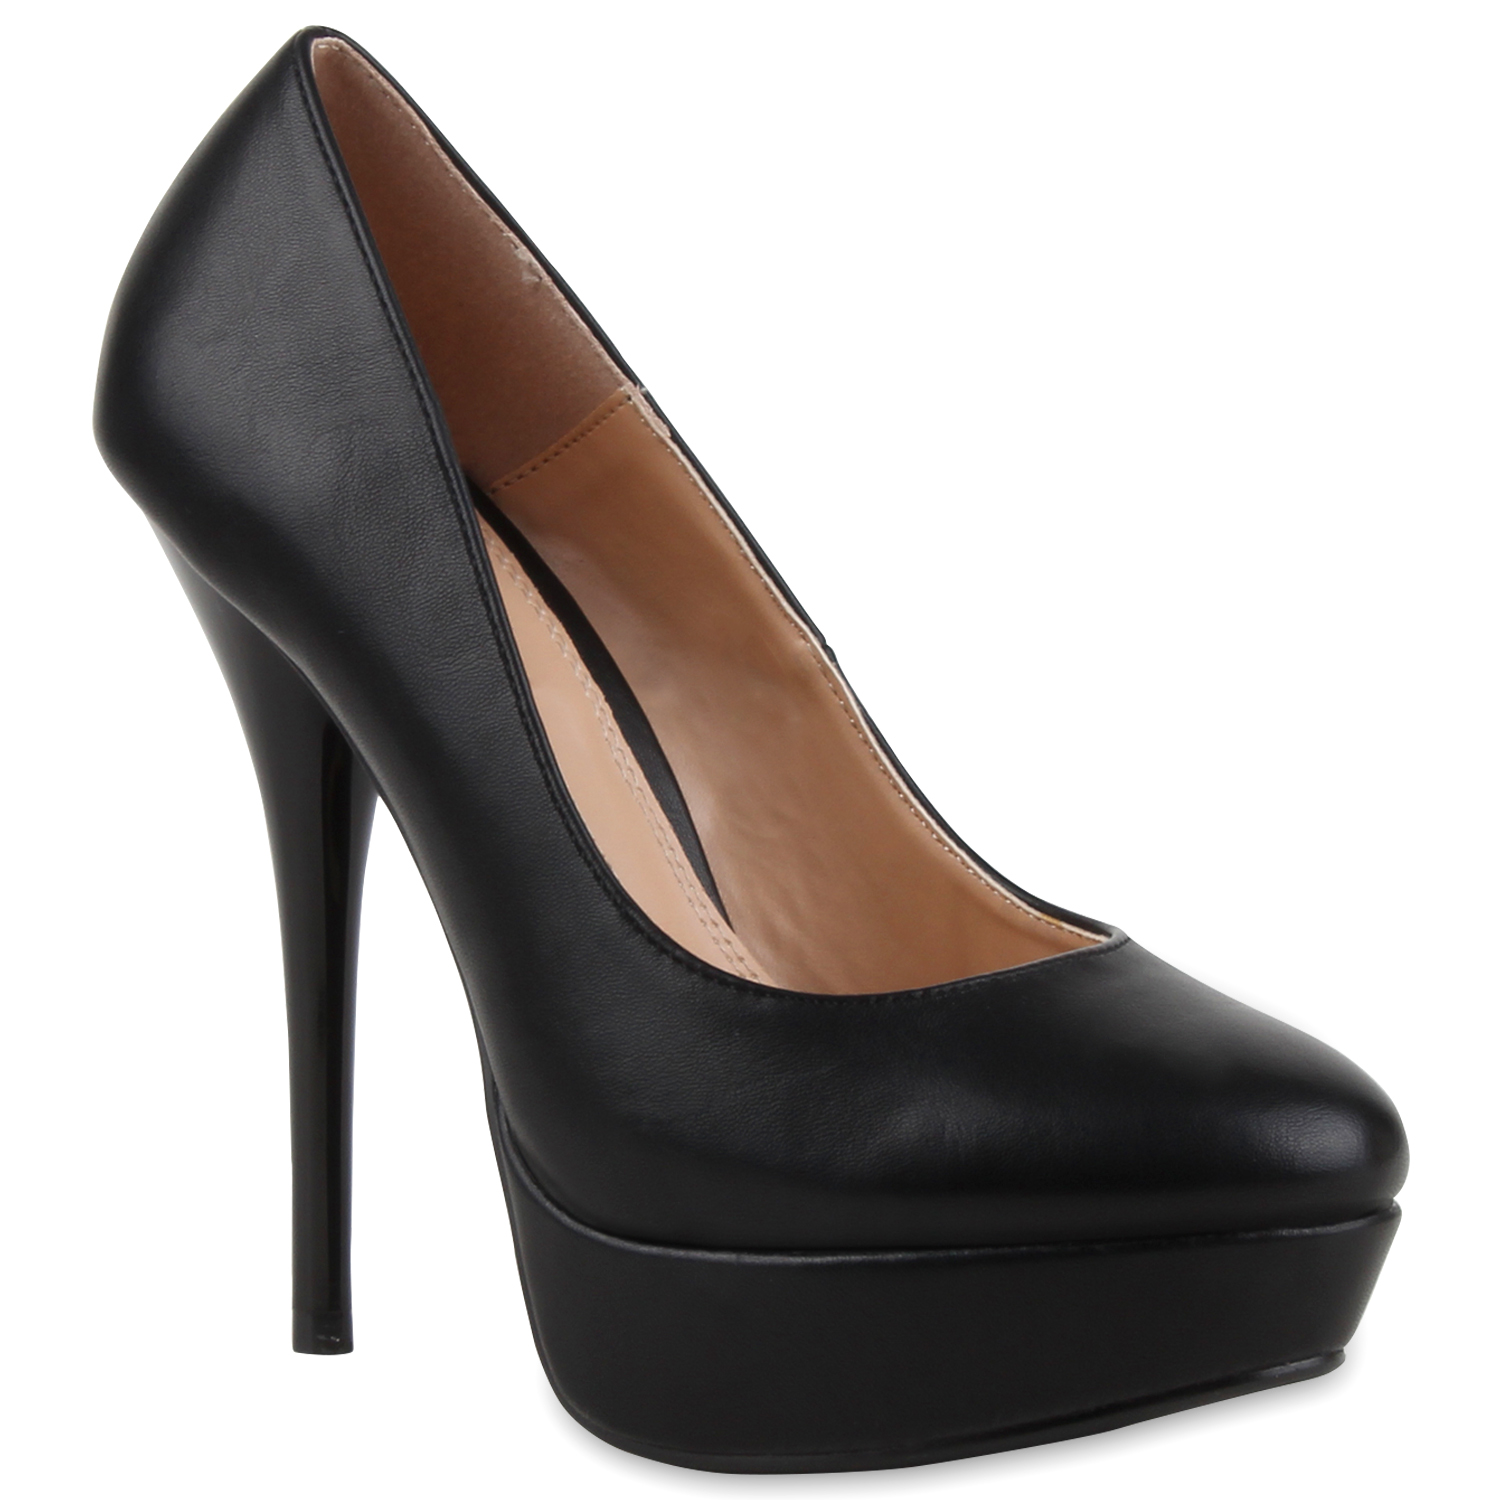 moderne damen plateau pumps high heels schuhe 70014 gr 36 41 ebay. Black Bedroom Furniture Sets. Home Design Ideas